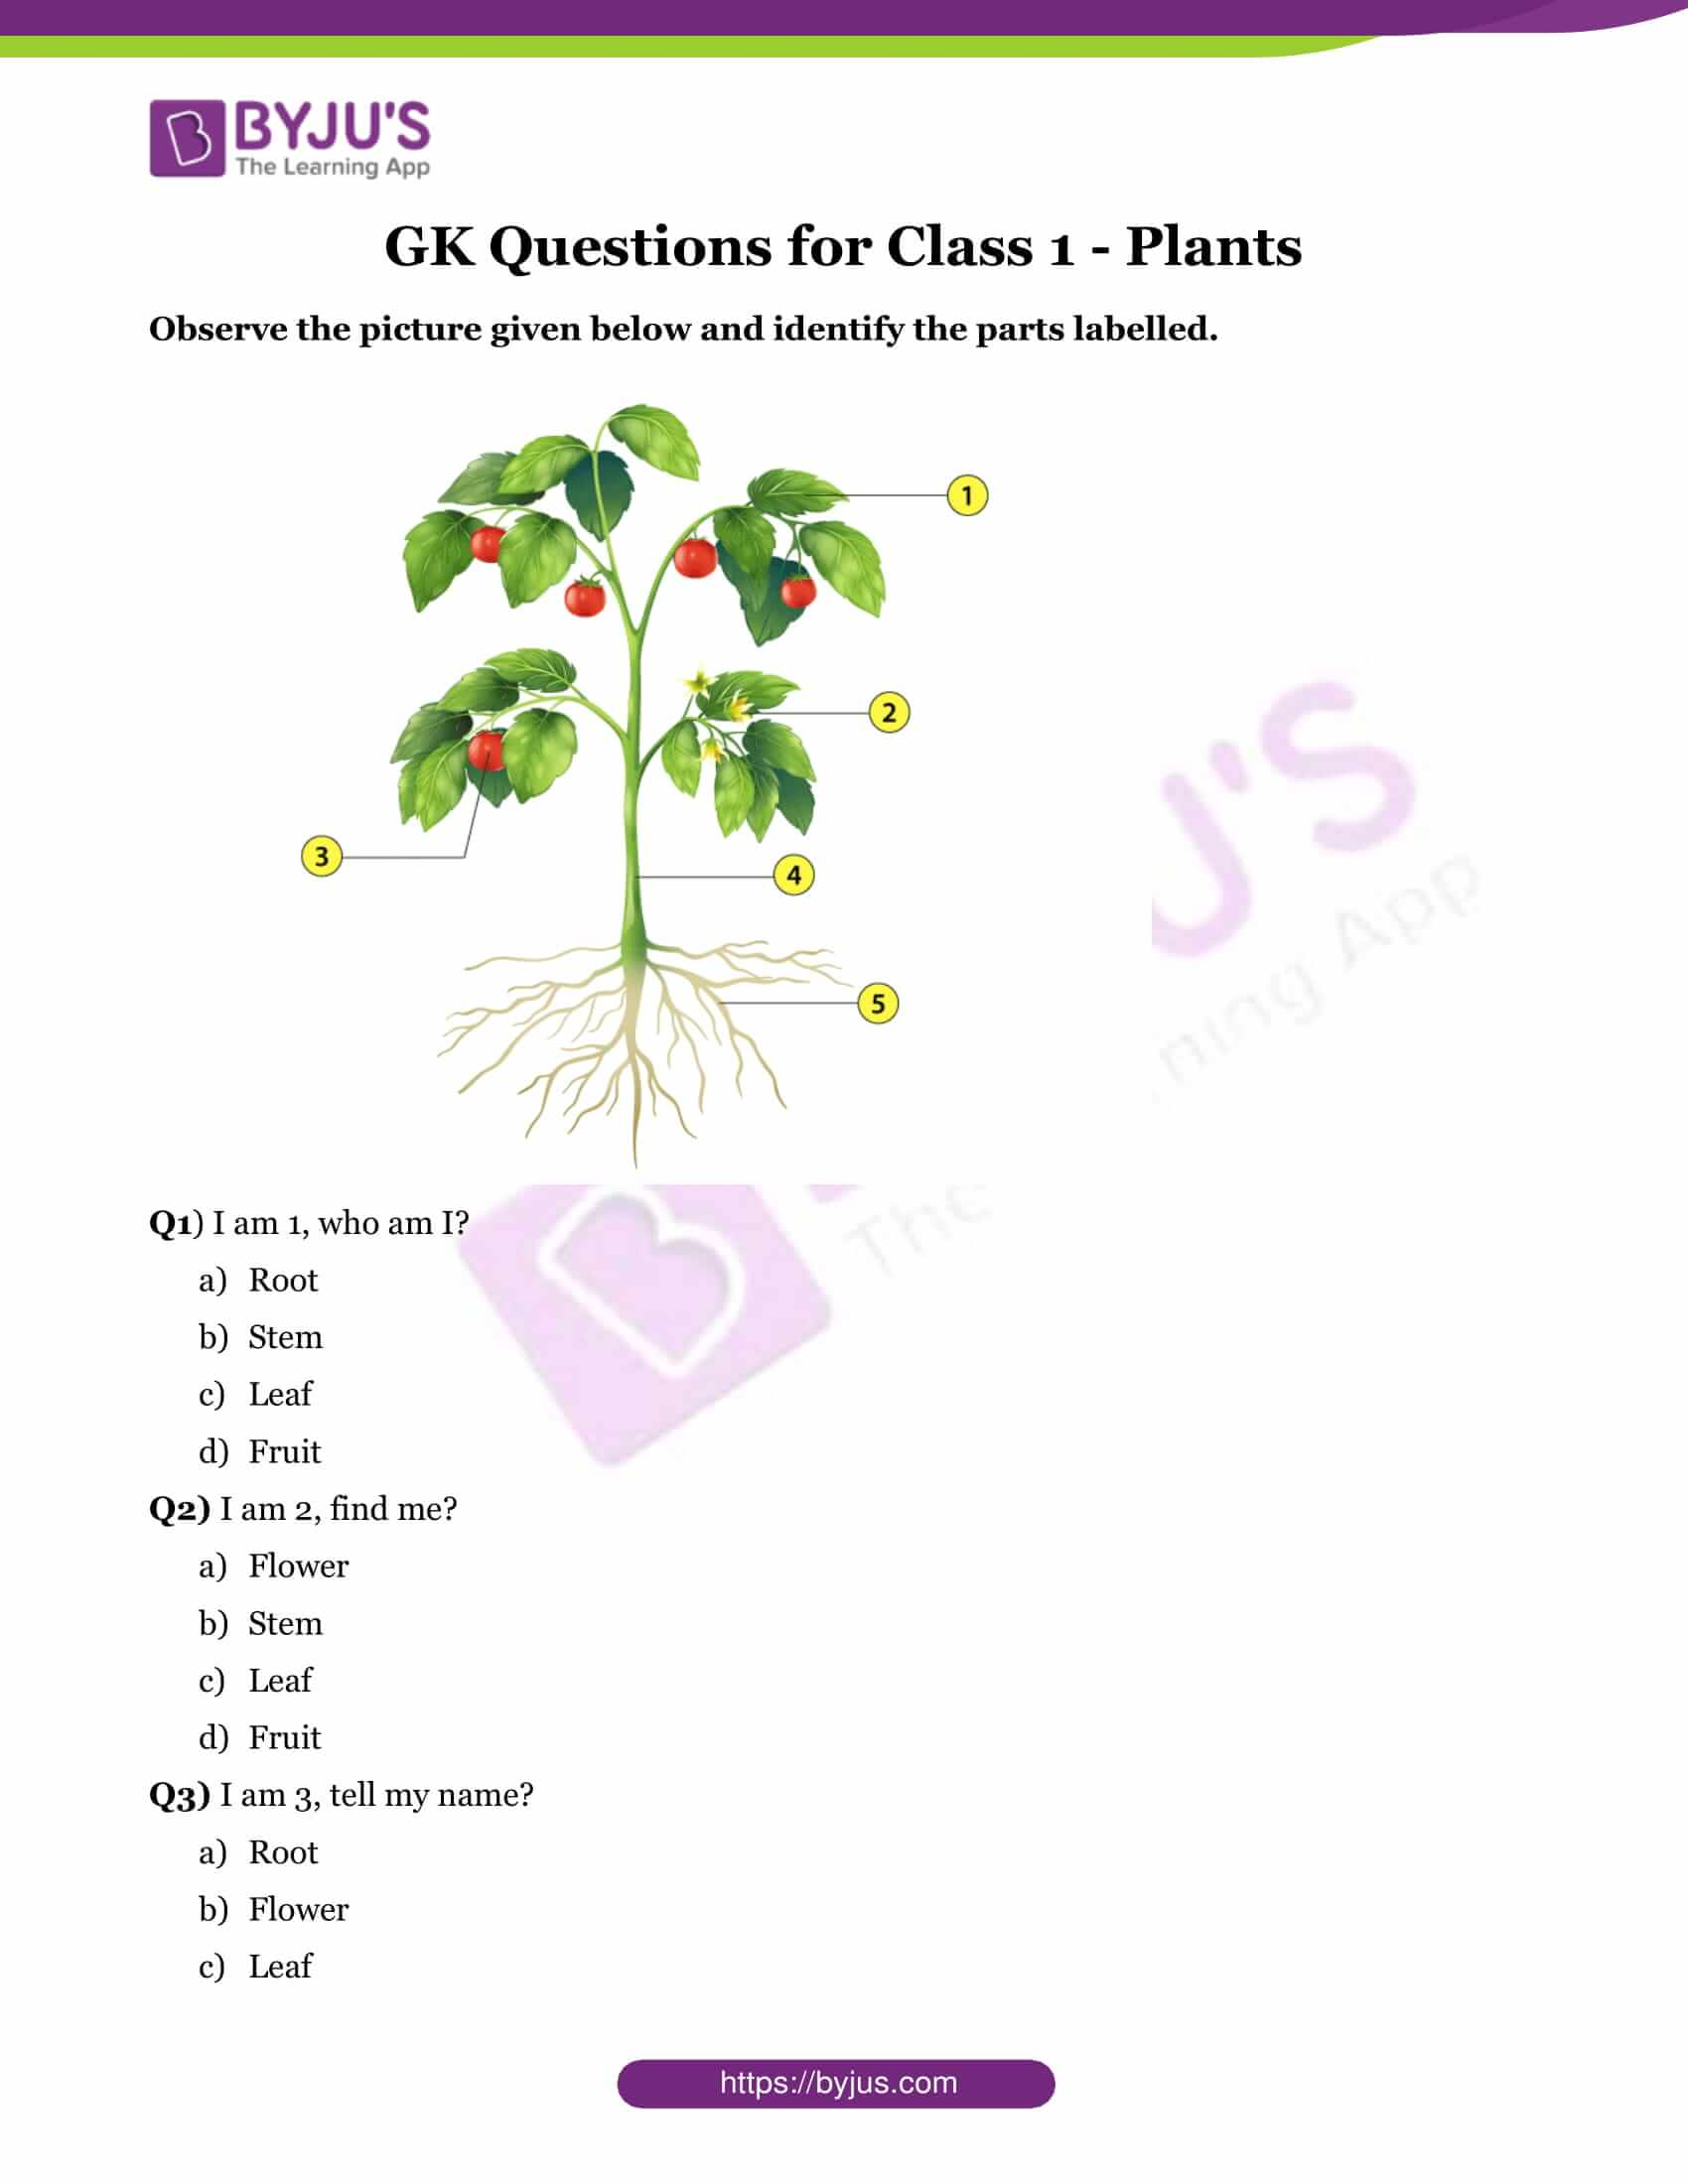 GK Questions for Class 1 - Plants